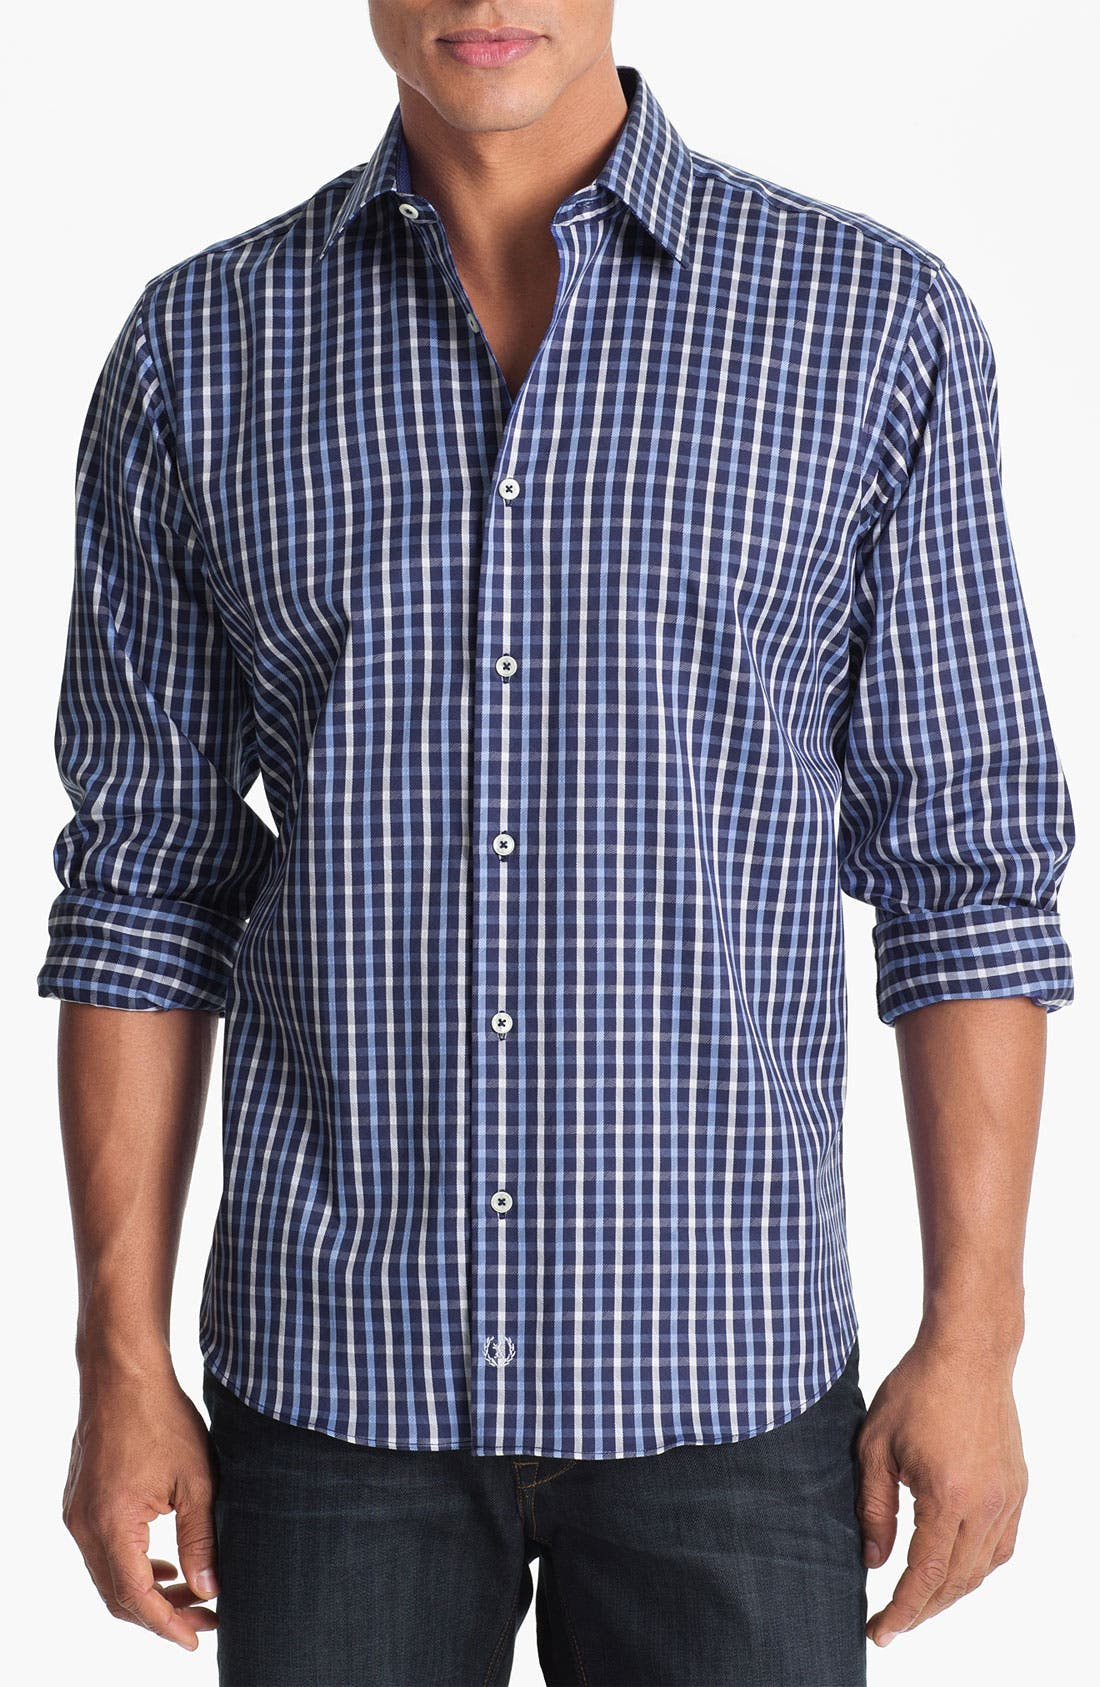 Alternate Image 1 Selected - BUGATCHI Classic Fit Sport Shirt